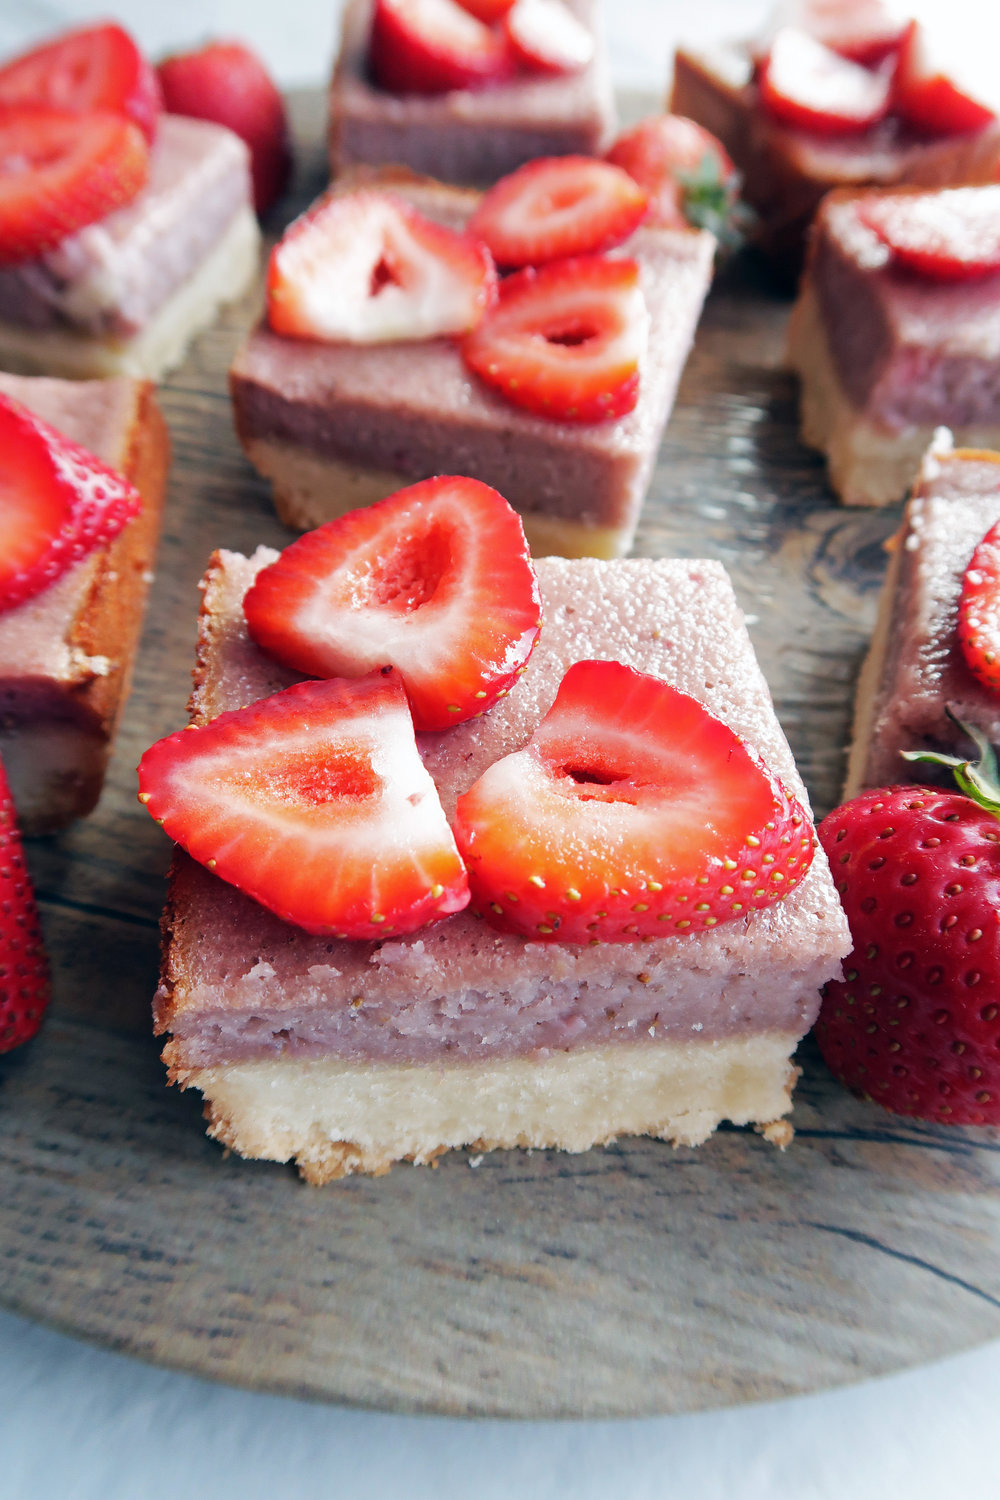 Closeup side angled view of a strawberry shortbread bar with strawberry slices on top -more in the background.